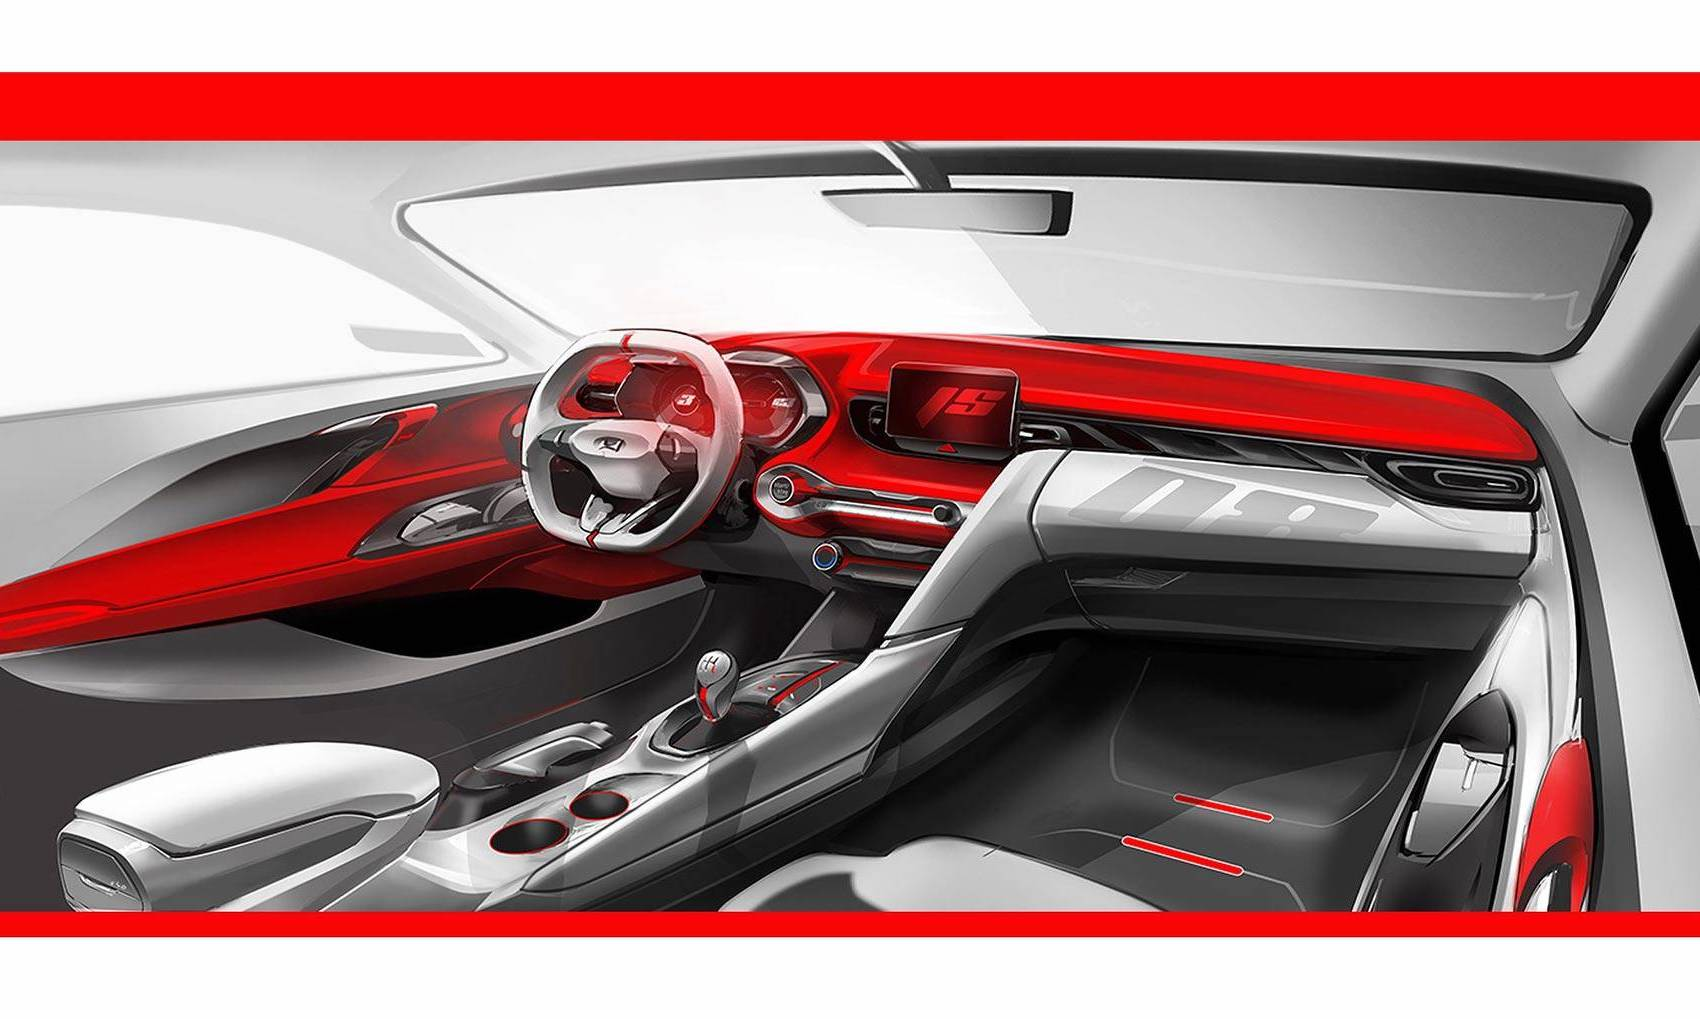 2019 Hyundai Veloster Interior Previewed With Digital Dash